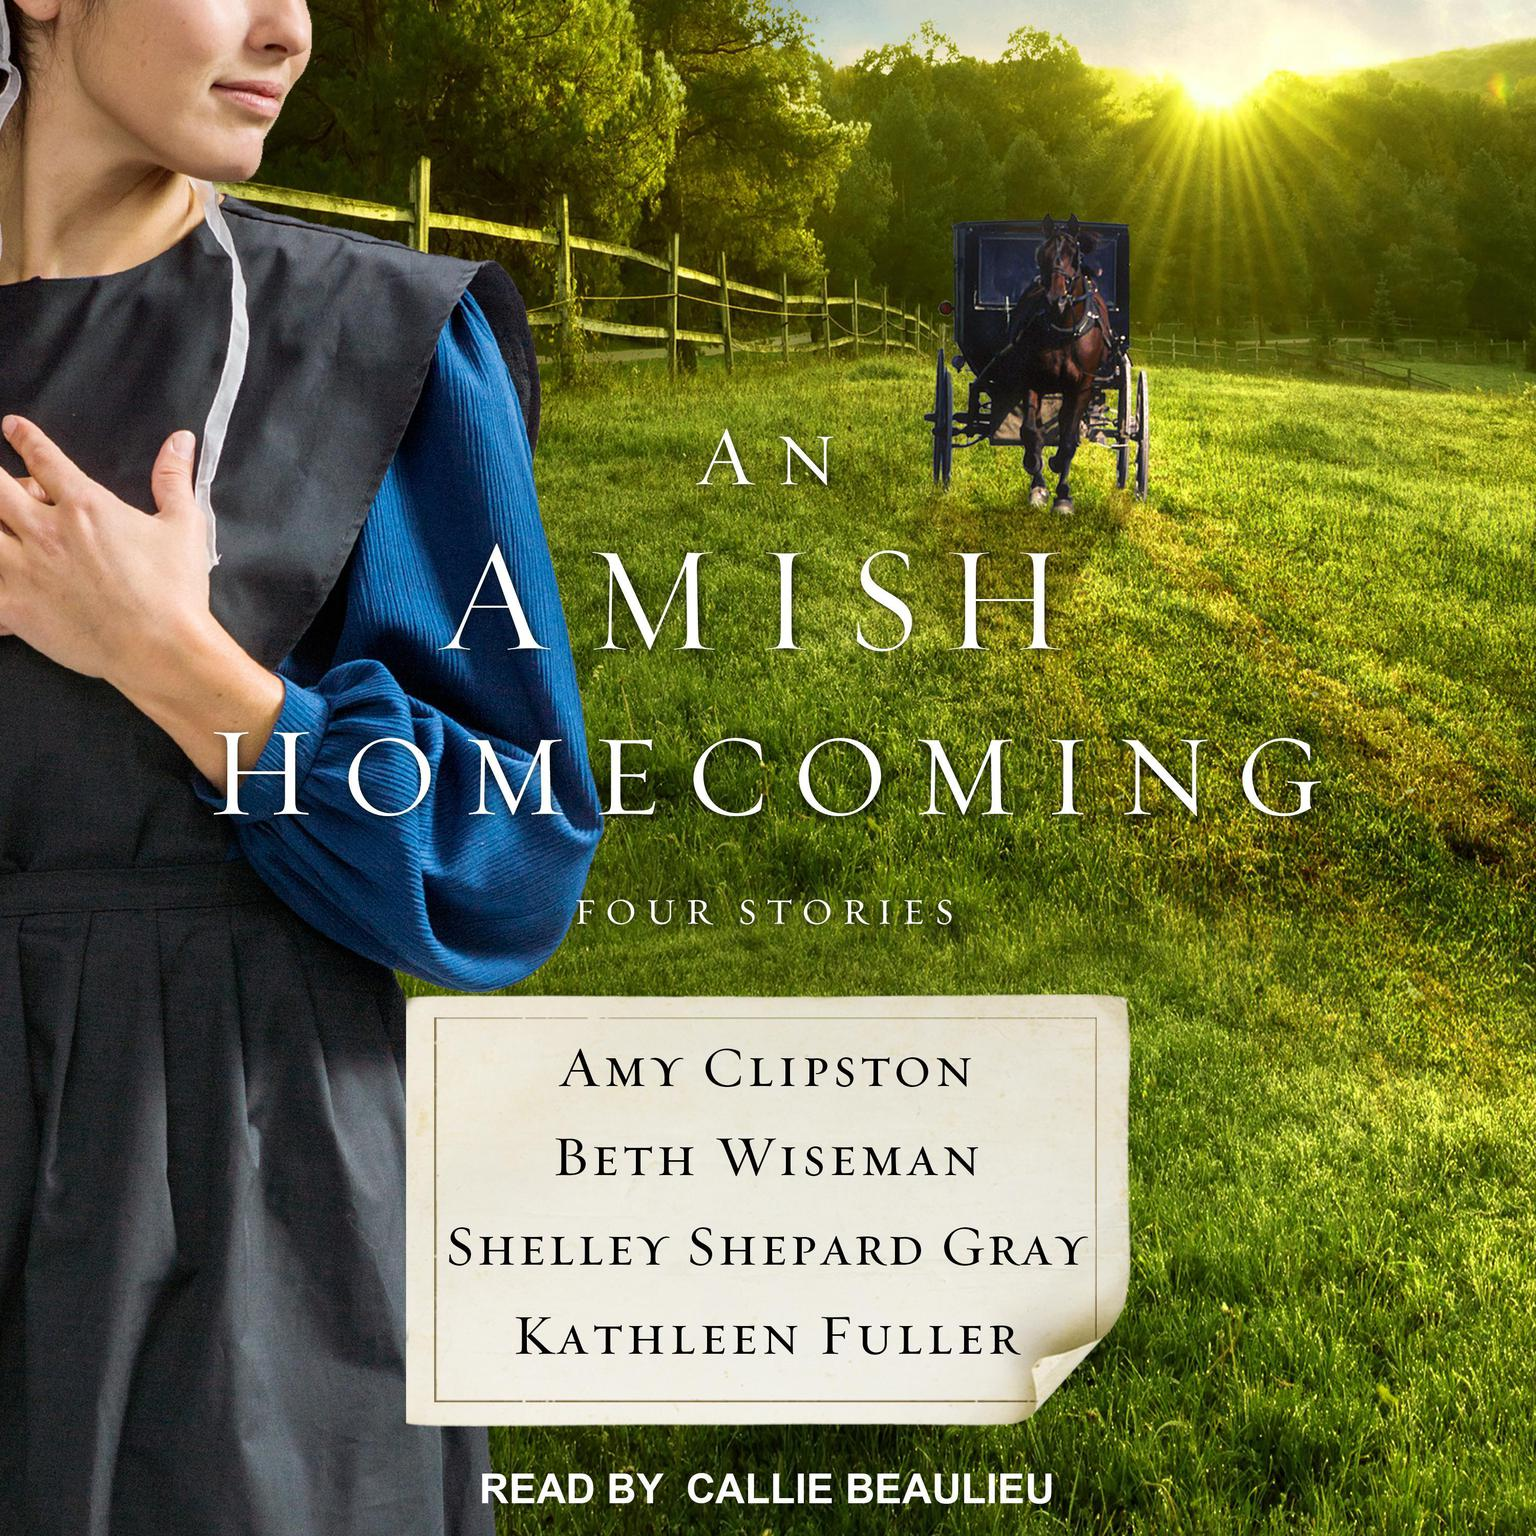 An Amish Homecoming: Four Stories Audiobook, by Amy Clipston